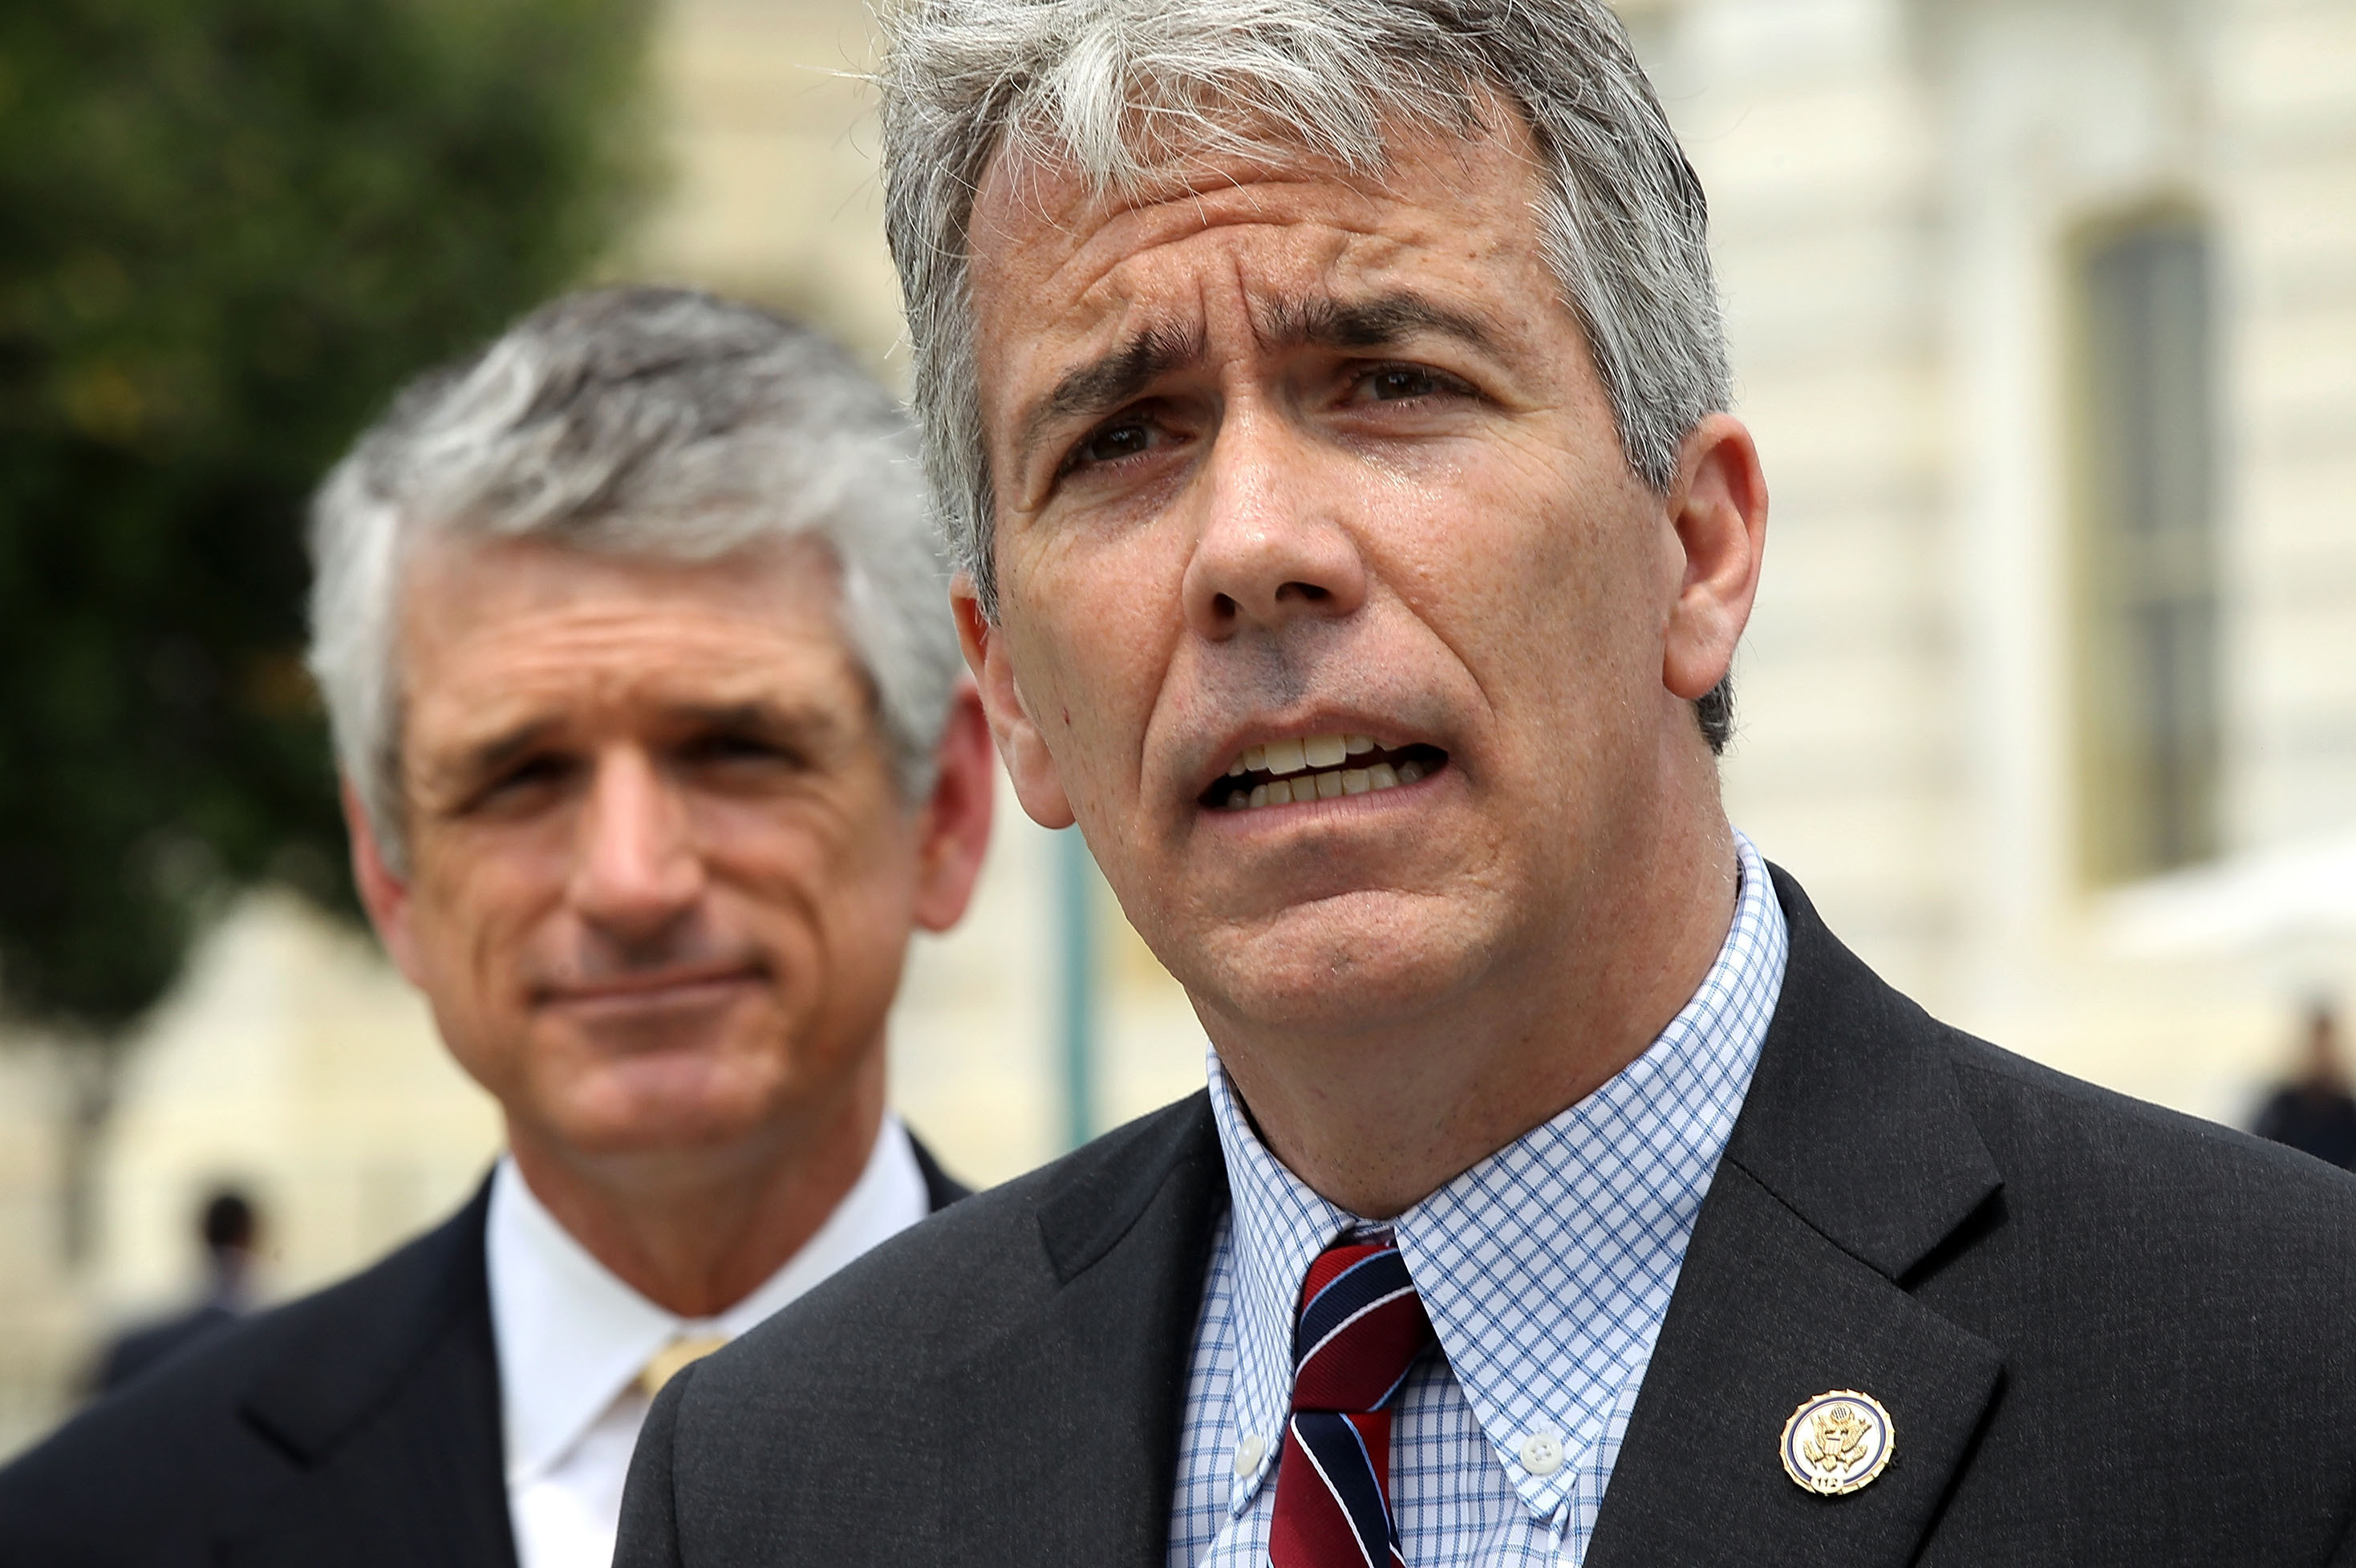 OUT: Illinois Republican Rep. Joe Walsh (foreground), with Virginia Rep. Scott Rigell, speaks during a May news conference on Capitol Hill. Walsh, a Tea Party freshman, lost to Democrat Tammy Duckworth.